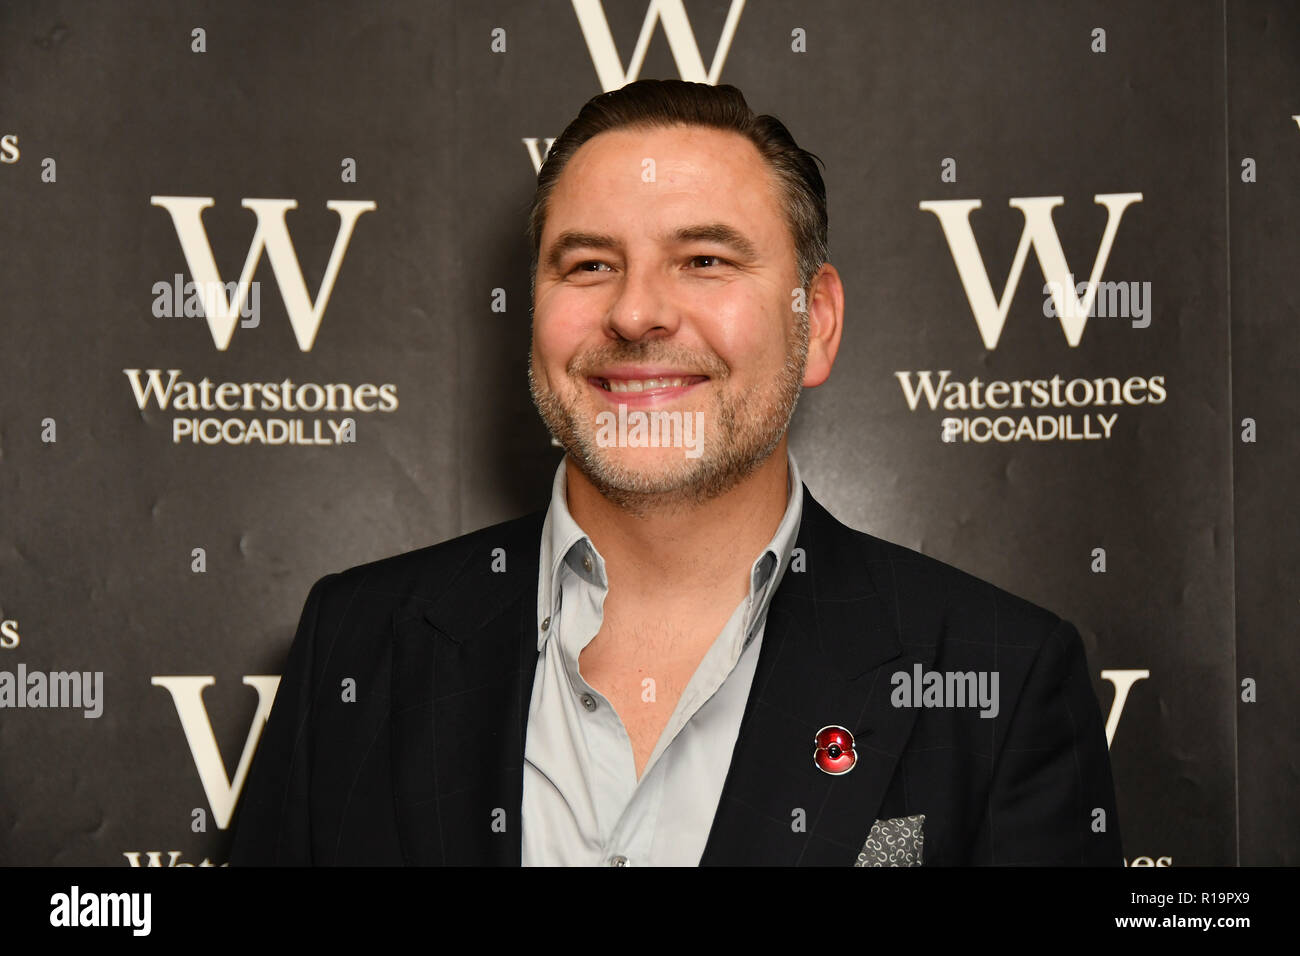 London, UK. 10th Nov, 2018. David Walliams meeting adoring fans at Waterstones Piccadilly as he signs copies of his newest novel, The Ice Monster at his sold-out on 10 November 2018, London, UK. Credit: Picture Capital/Alamy Live News - Stock Image